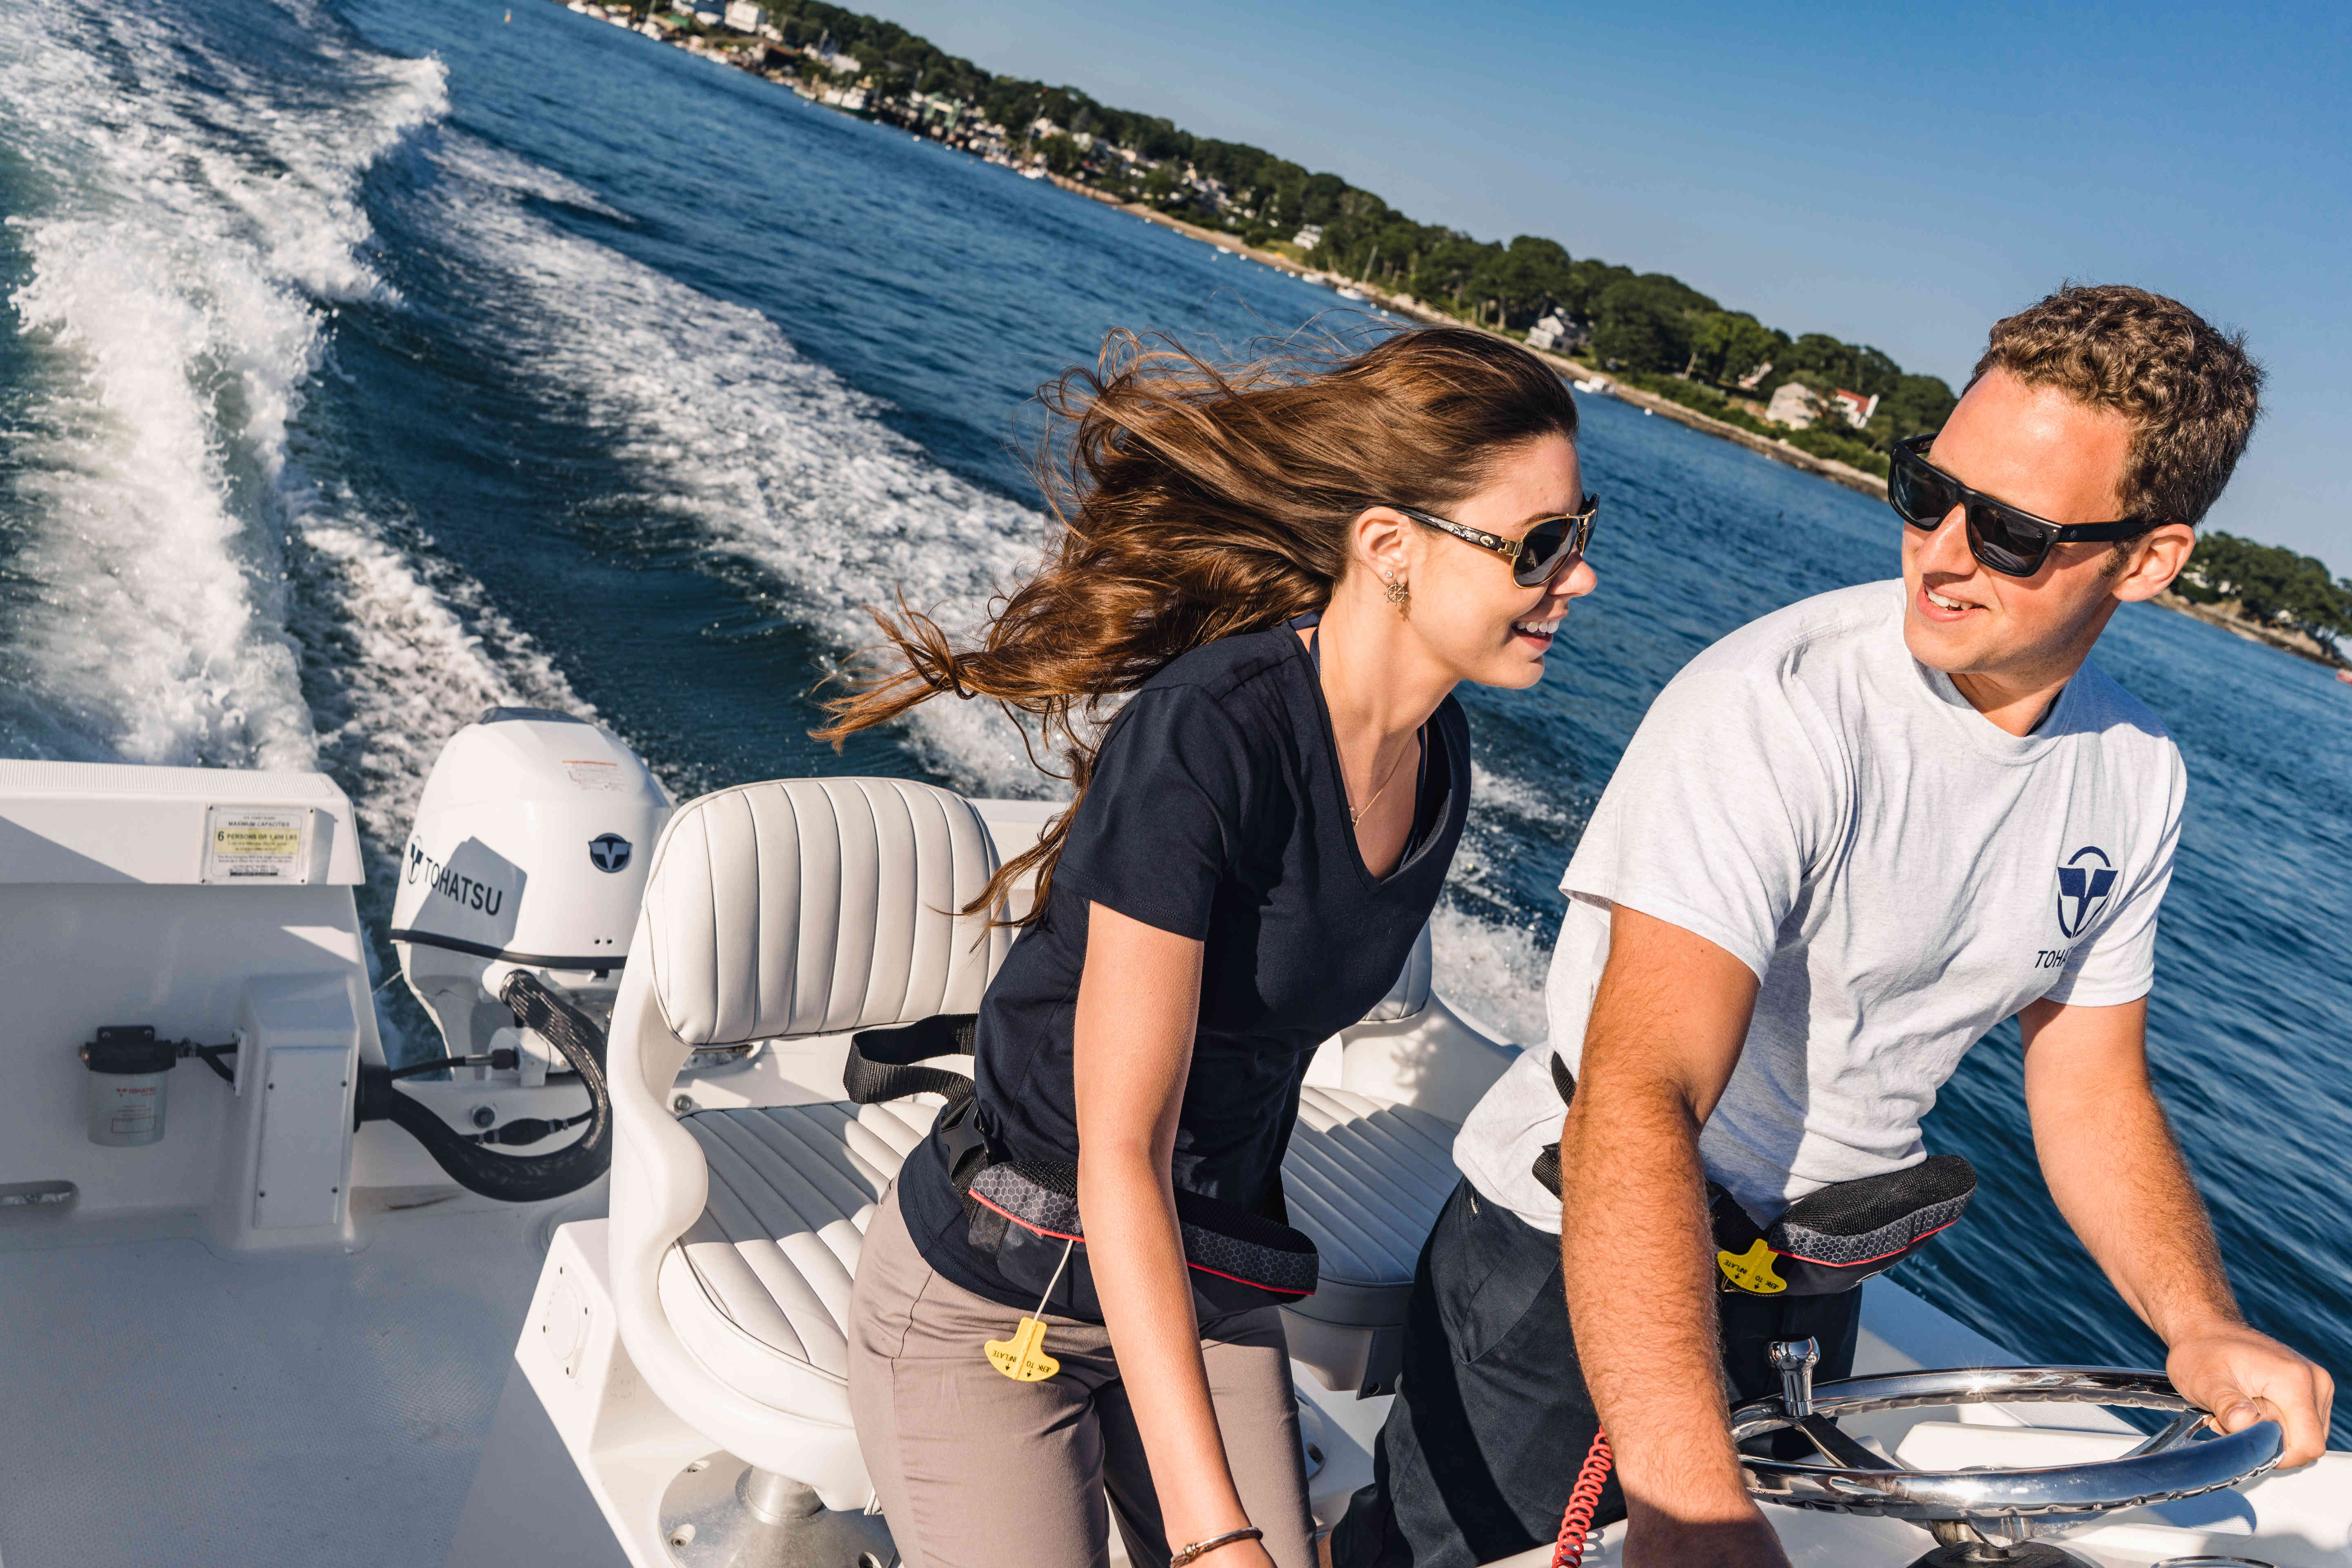 Clearance Sale! Tohatsu MFS50AW EPTL 50hp 4 Stroke Outboard Motor Engine  Electric Start, Power Trim & Tilt, Remote Control, Long Shaft (WHITE) BRAND